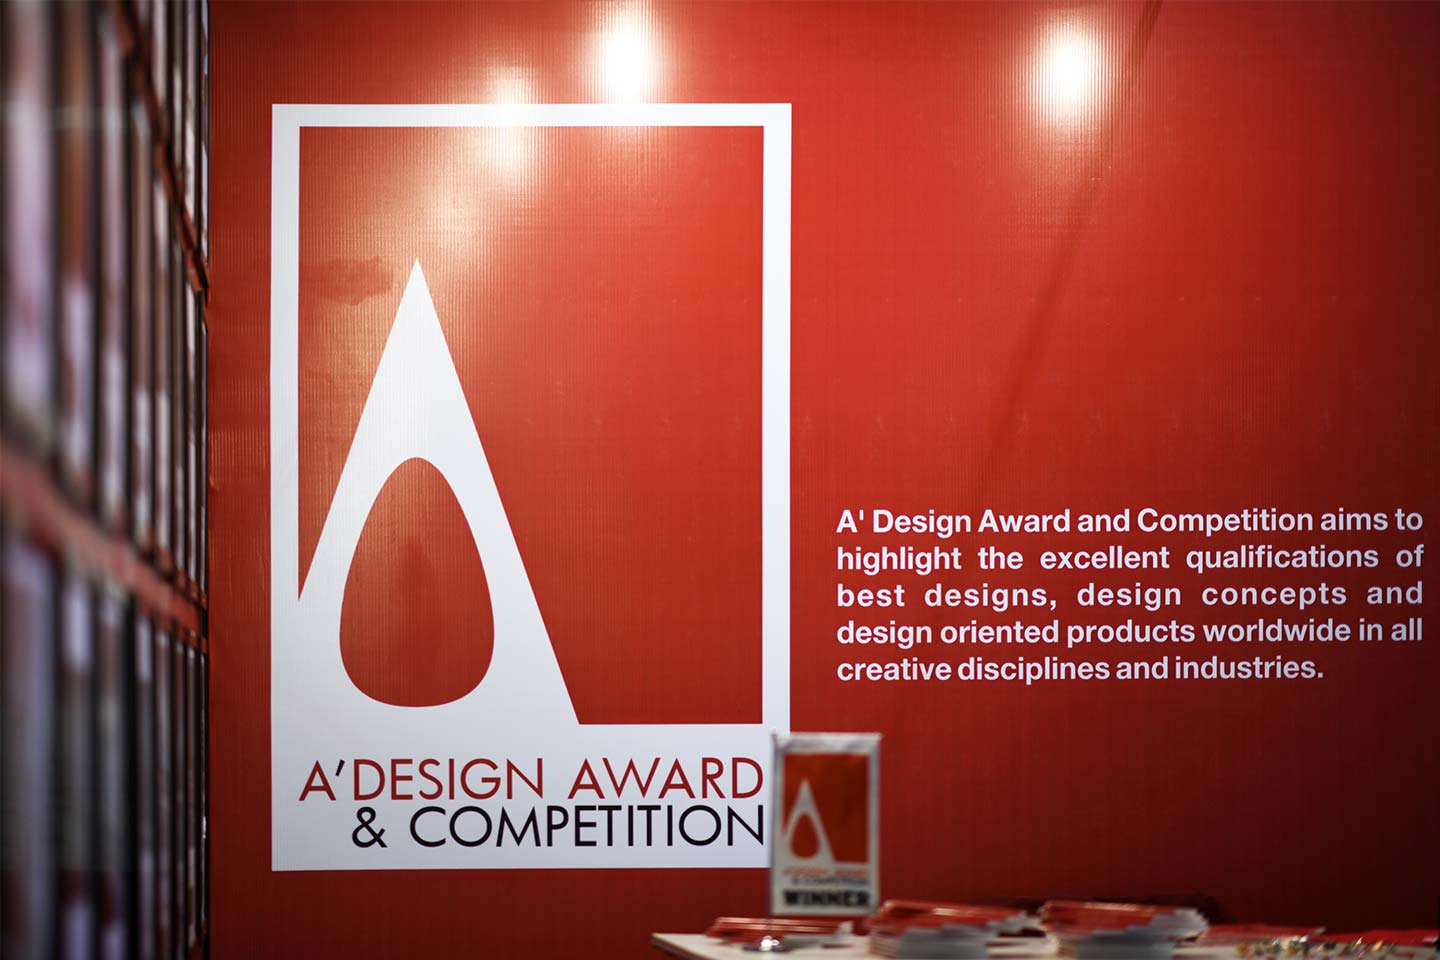 A' Design Award & Competition 2021